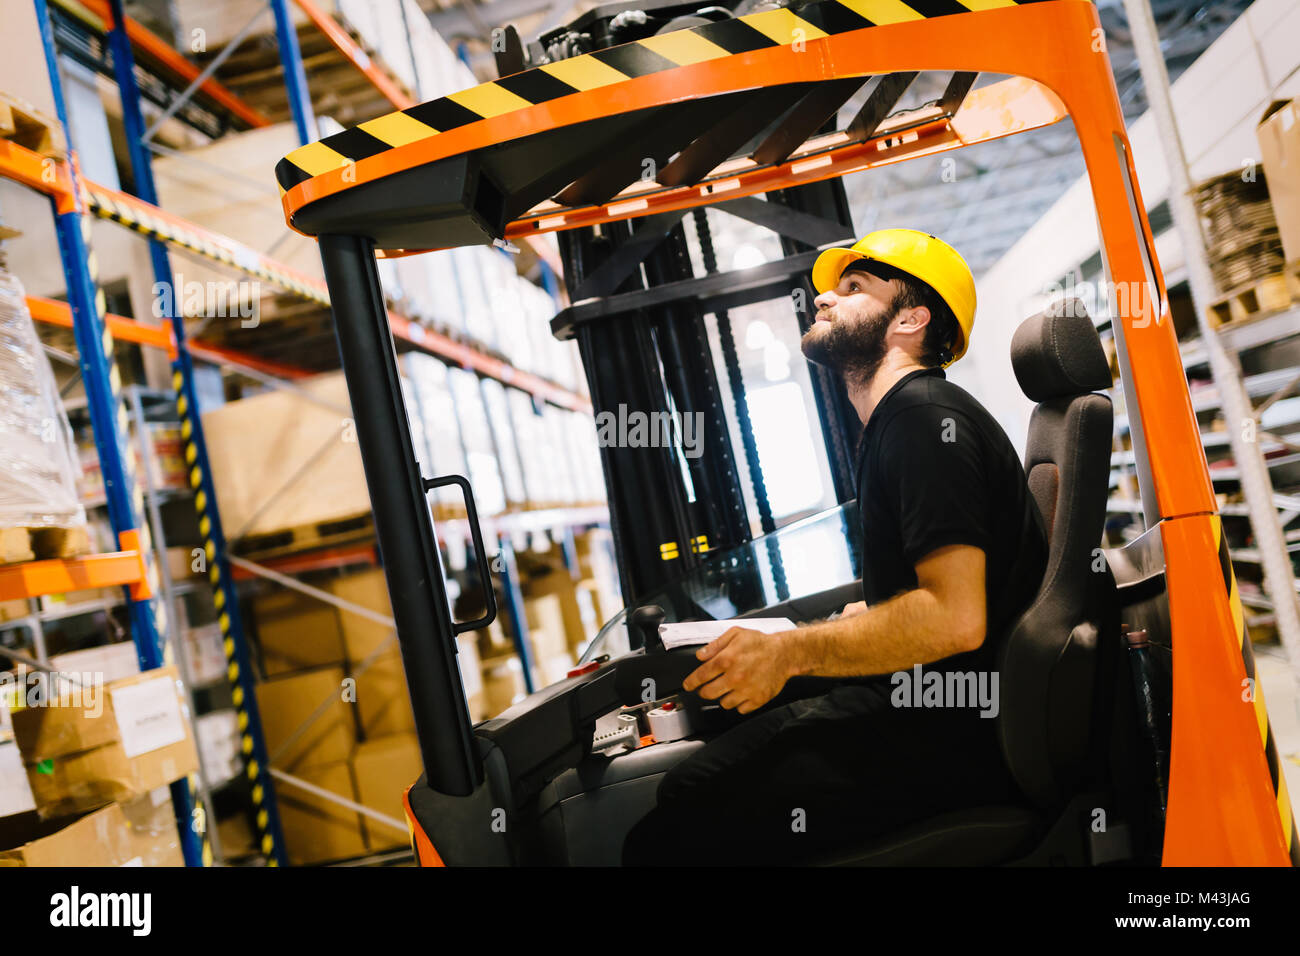 Warehouse worker doing logistics work with forklift loader - Stock Image